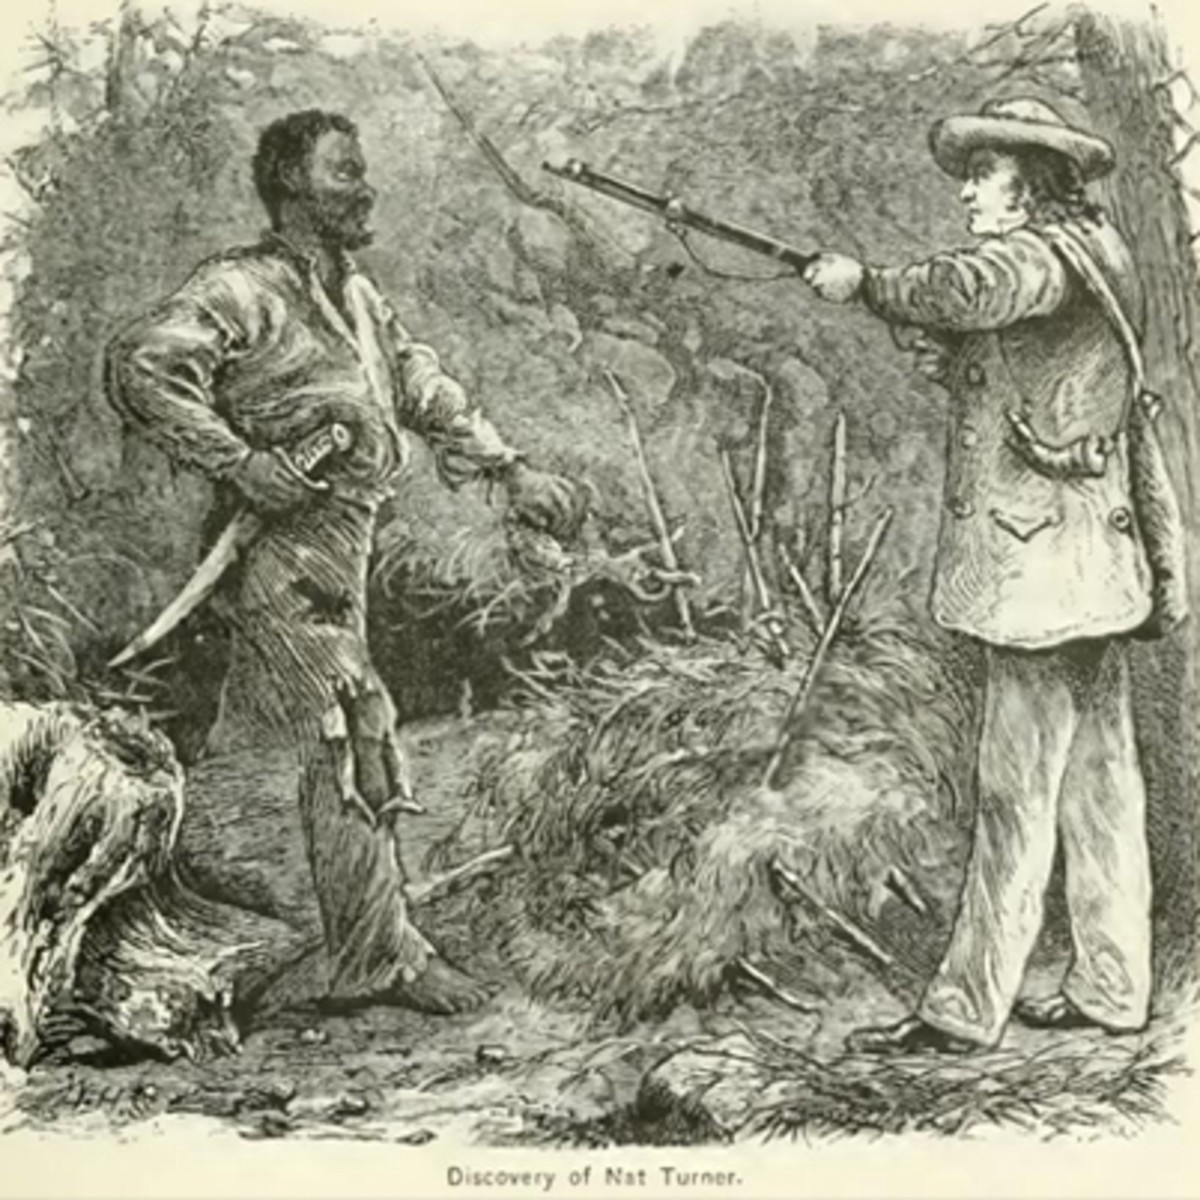 An artist's depiction of the capture of Nat Turner